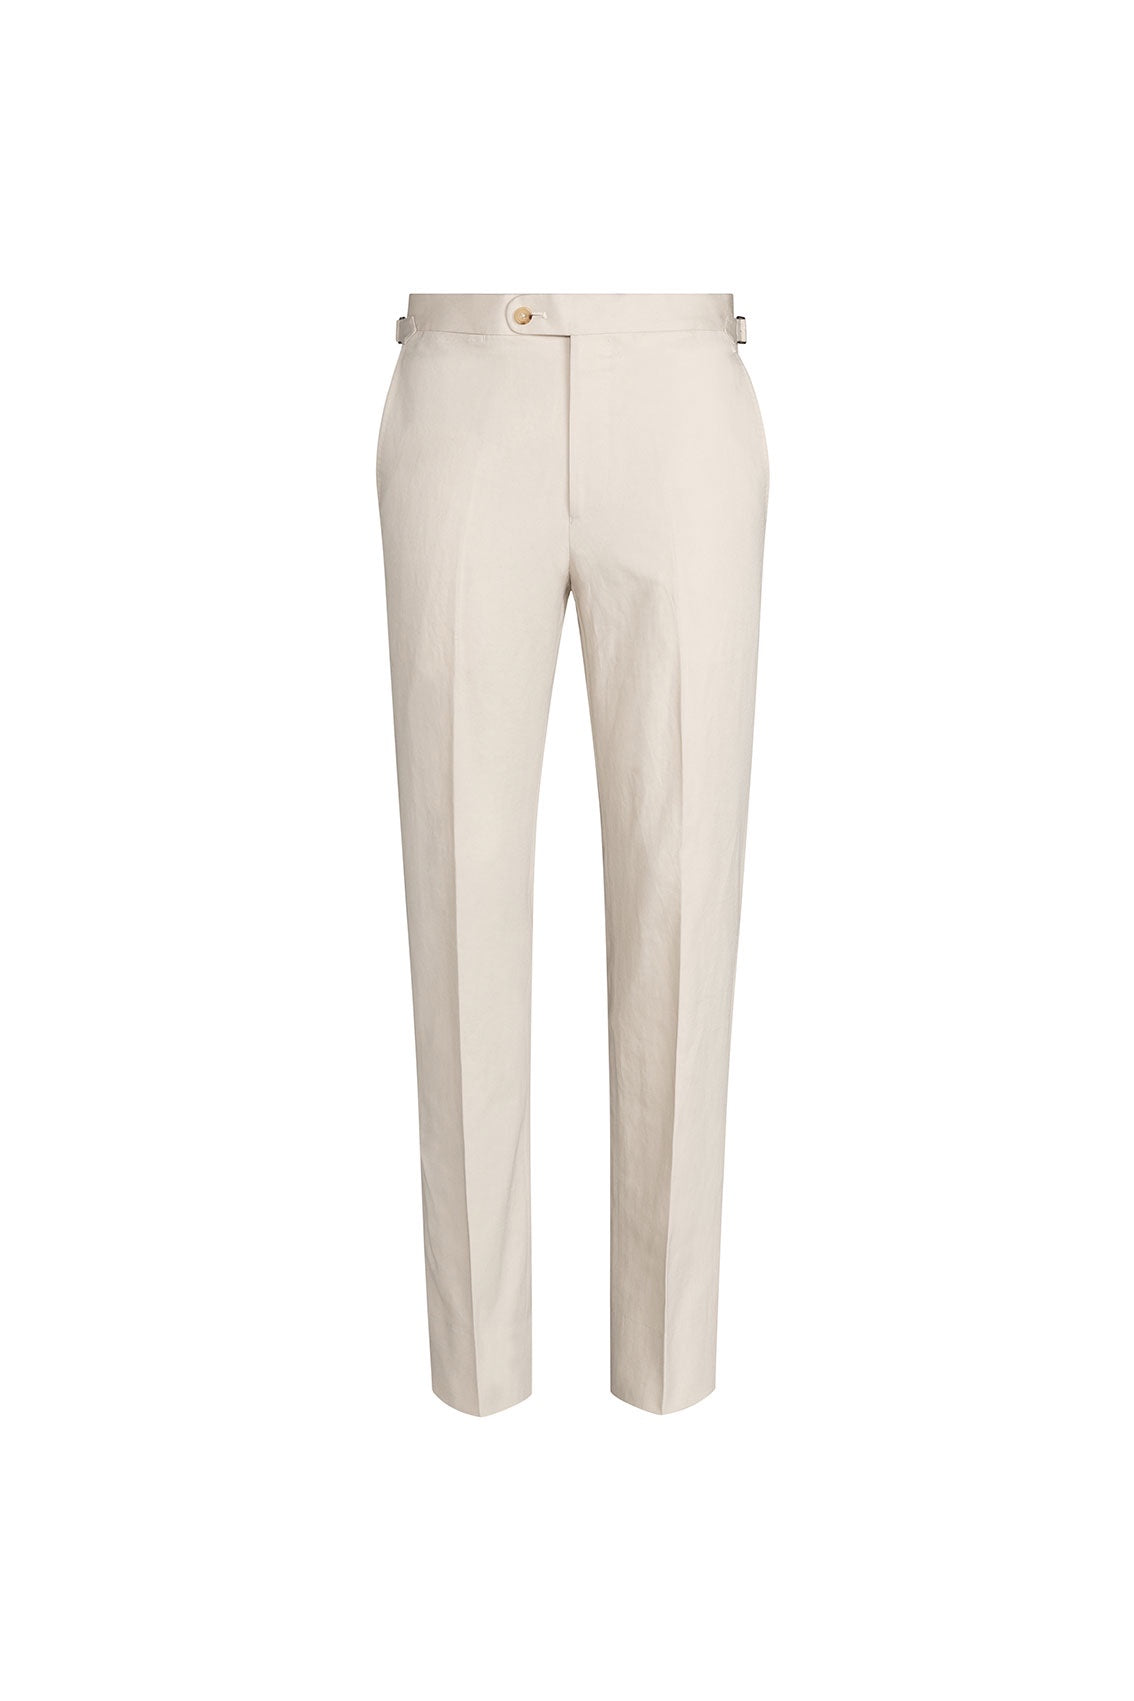 P Johnson Beige Cotton Linen Tailored Trousers